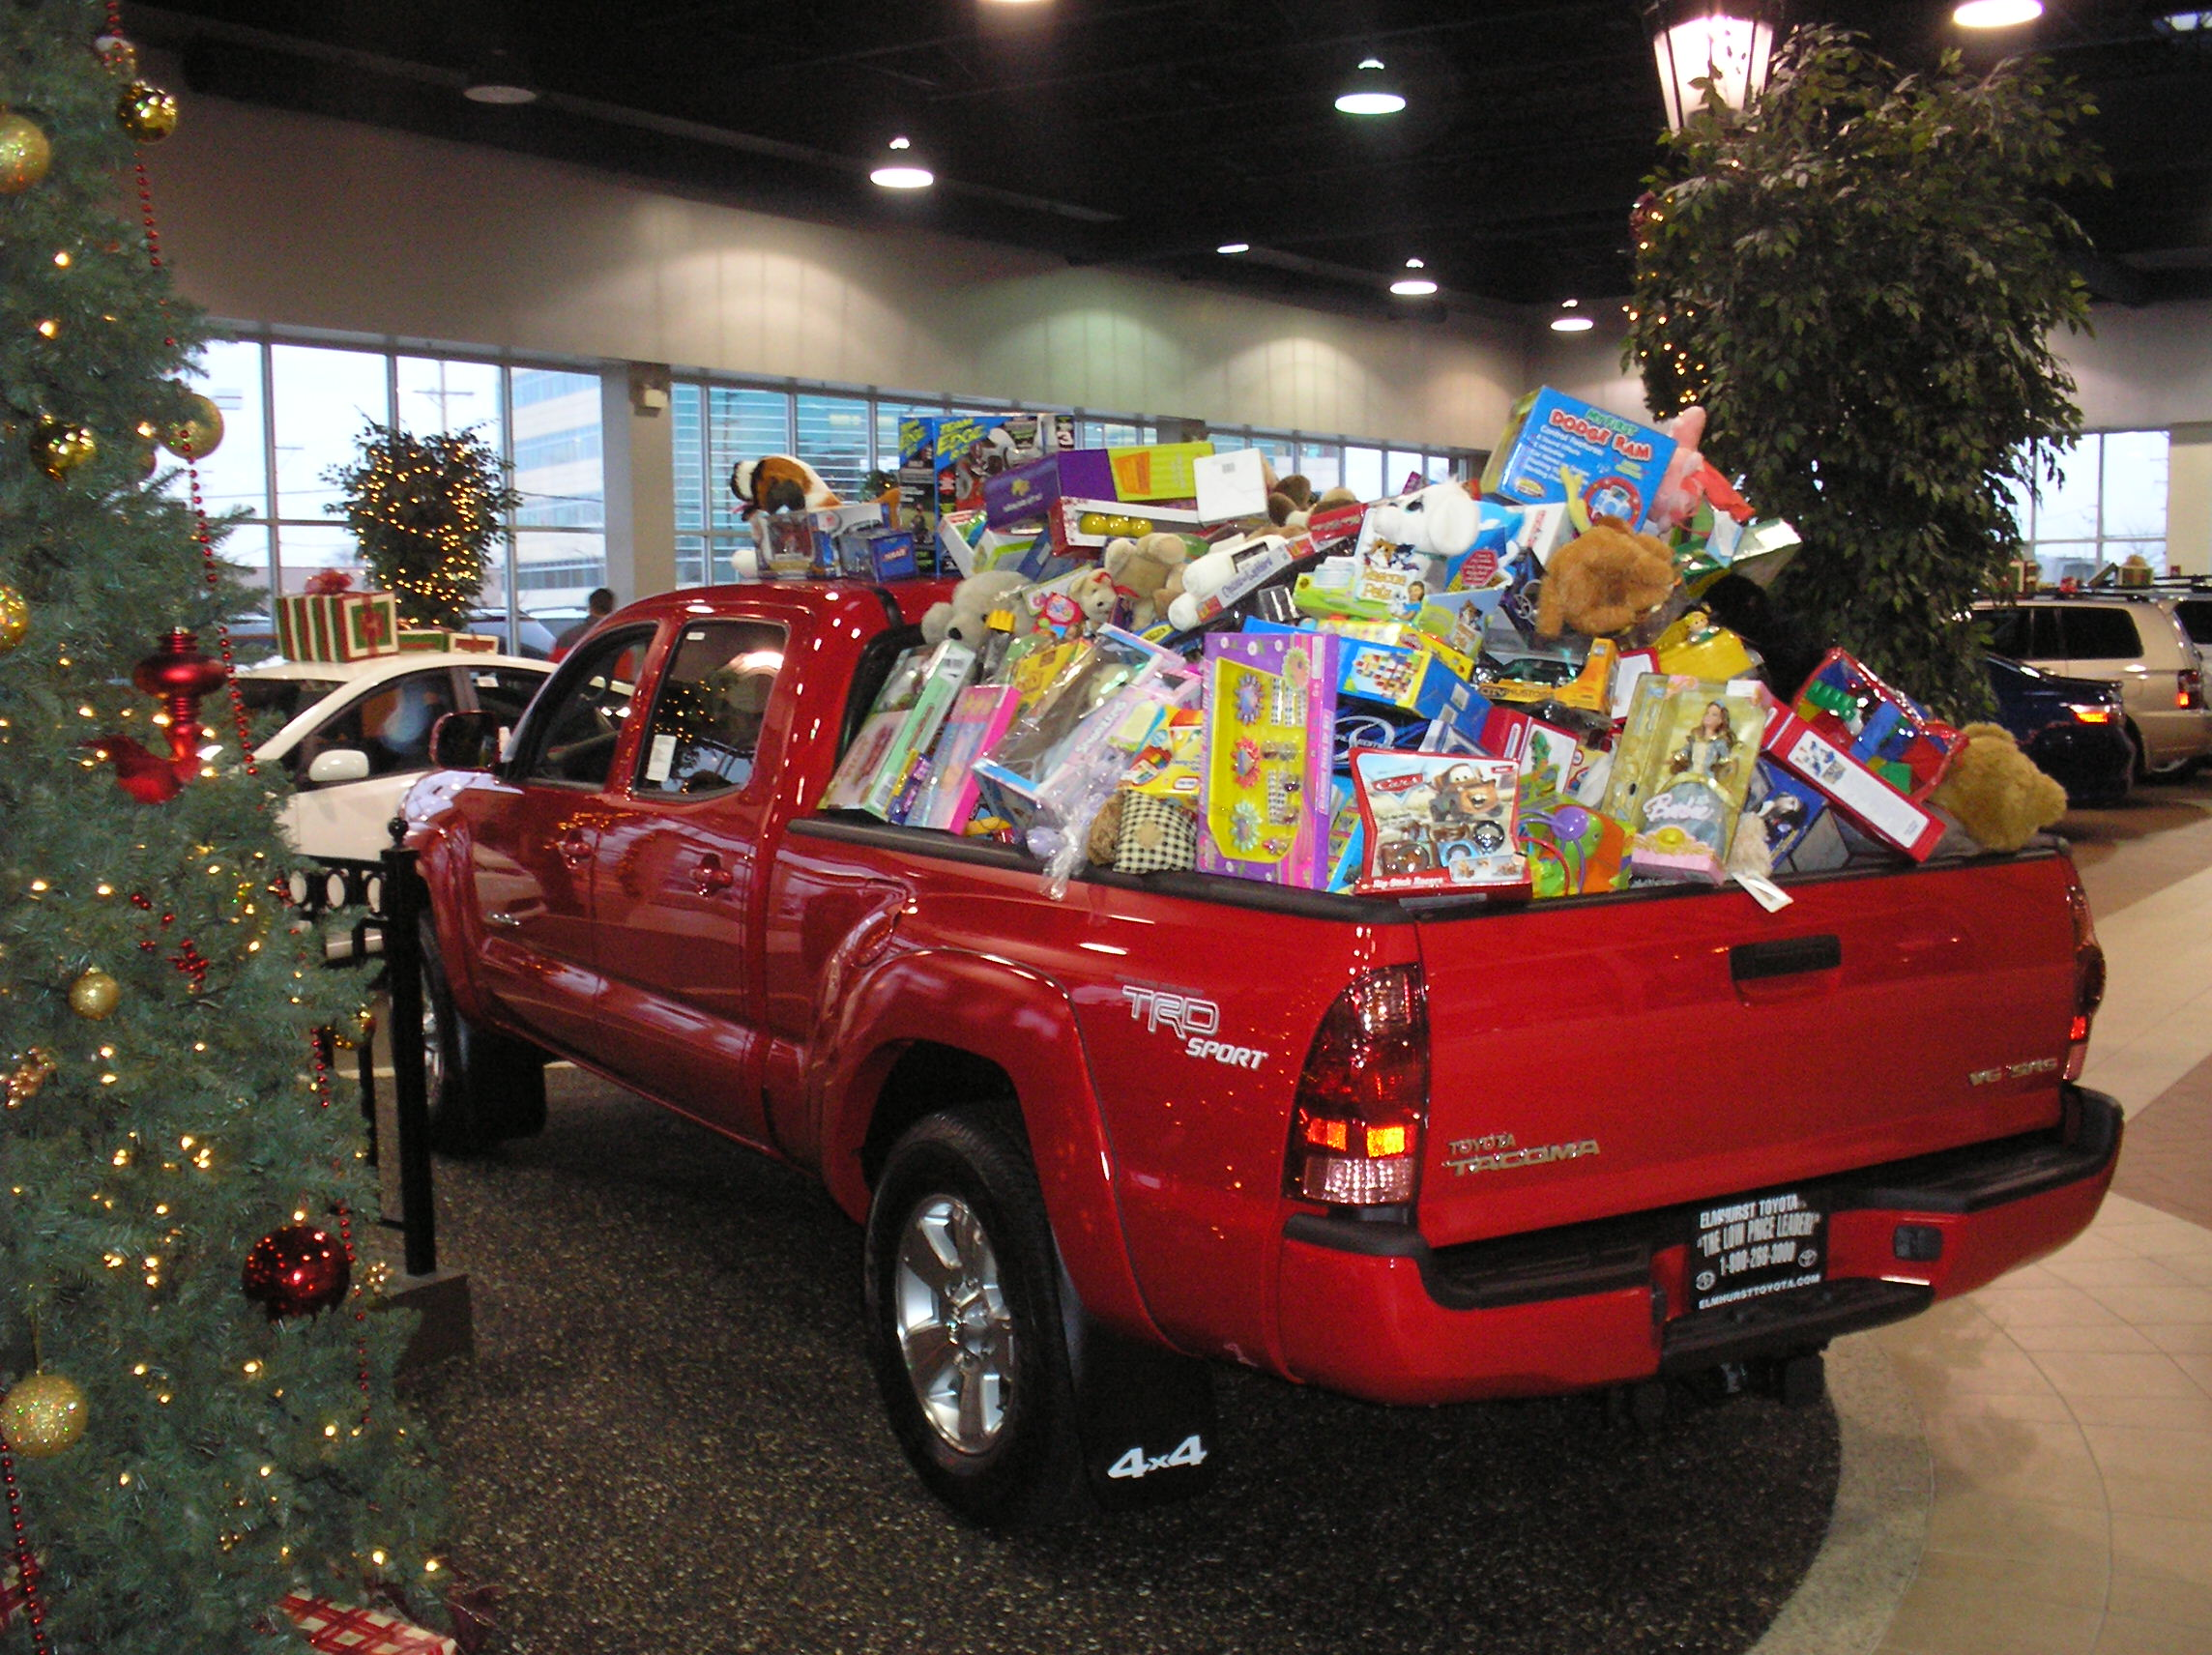 Fill A Truck 2017 Toys For Tots : Elmhurst toyota hosts toy drive to benefit toys for tots